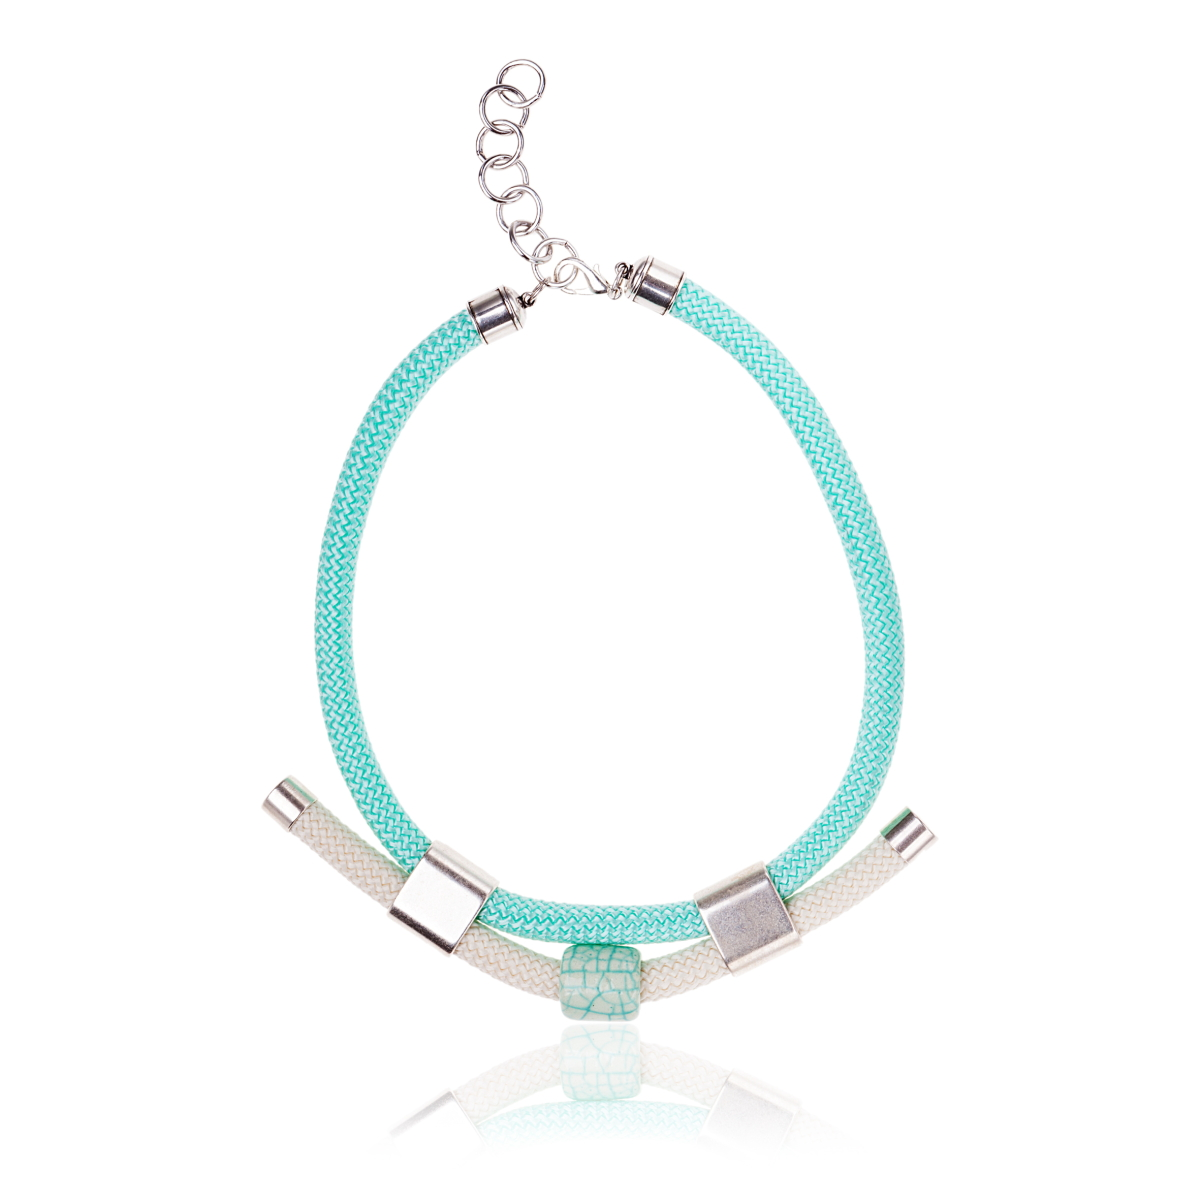 IRIS: Make a statement necklace / Aqua marine and Silver | Accessories,Jewelry > Necklaces,Jewelry -  Hiphunters Shop